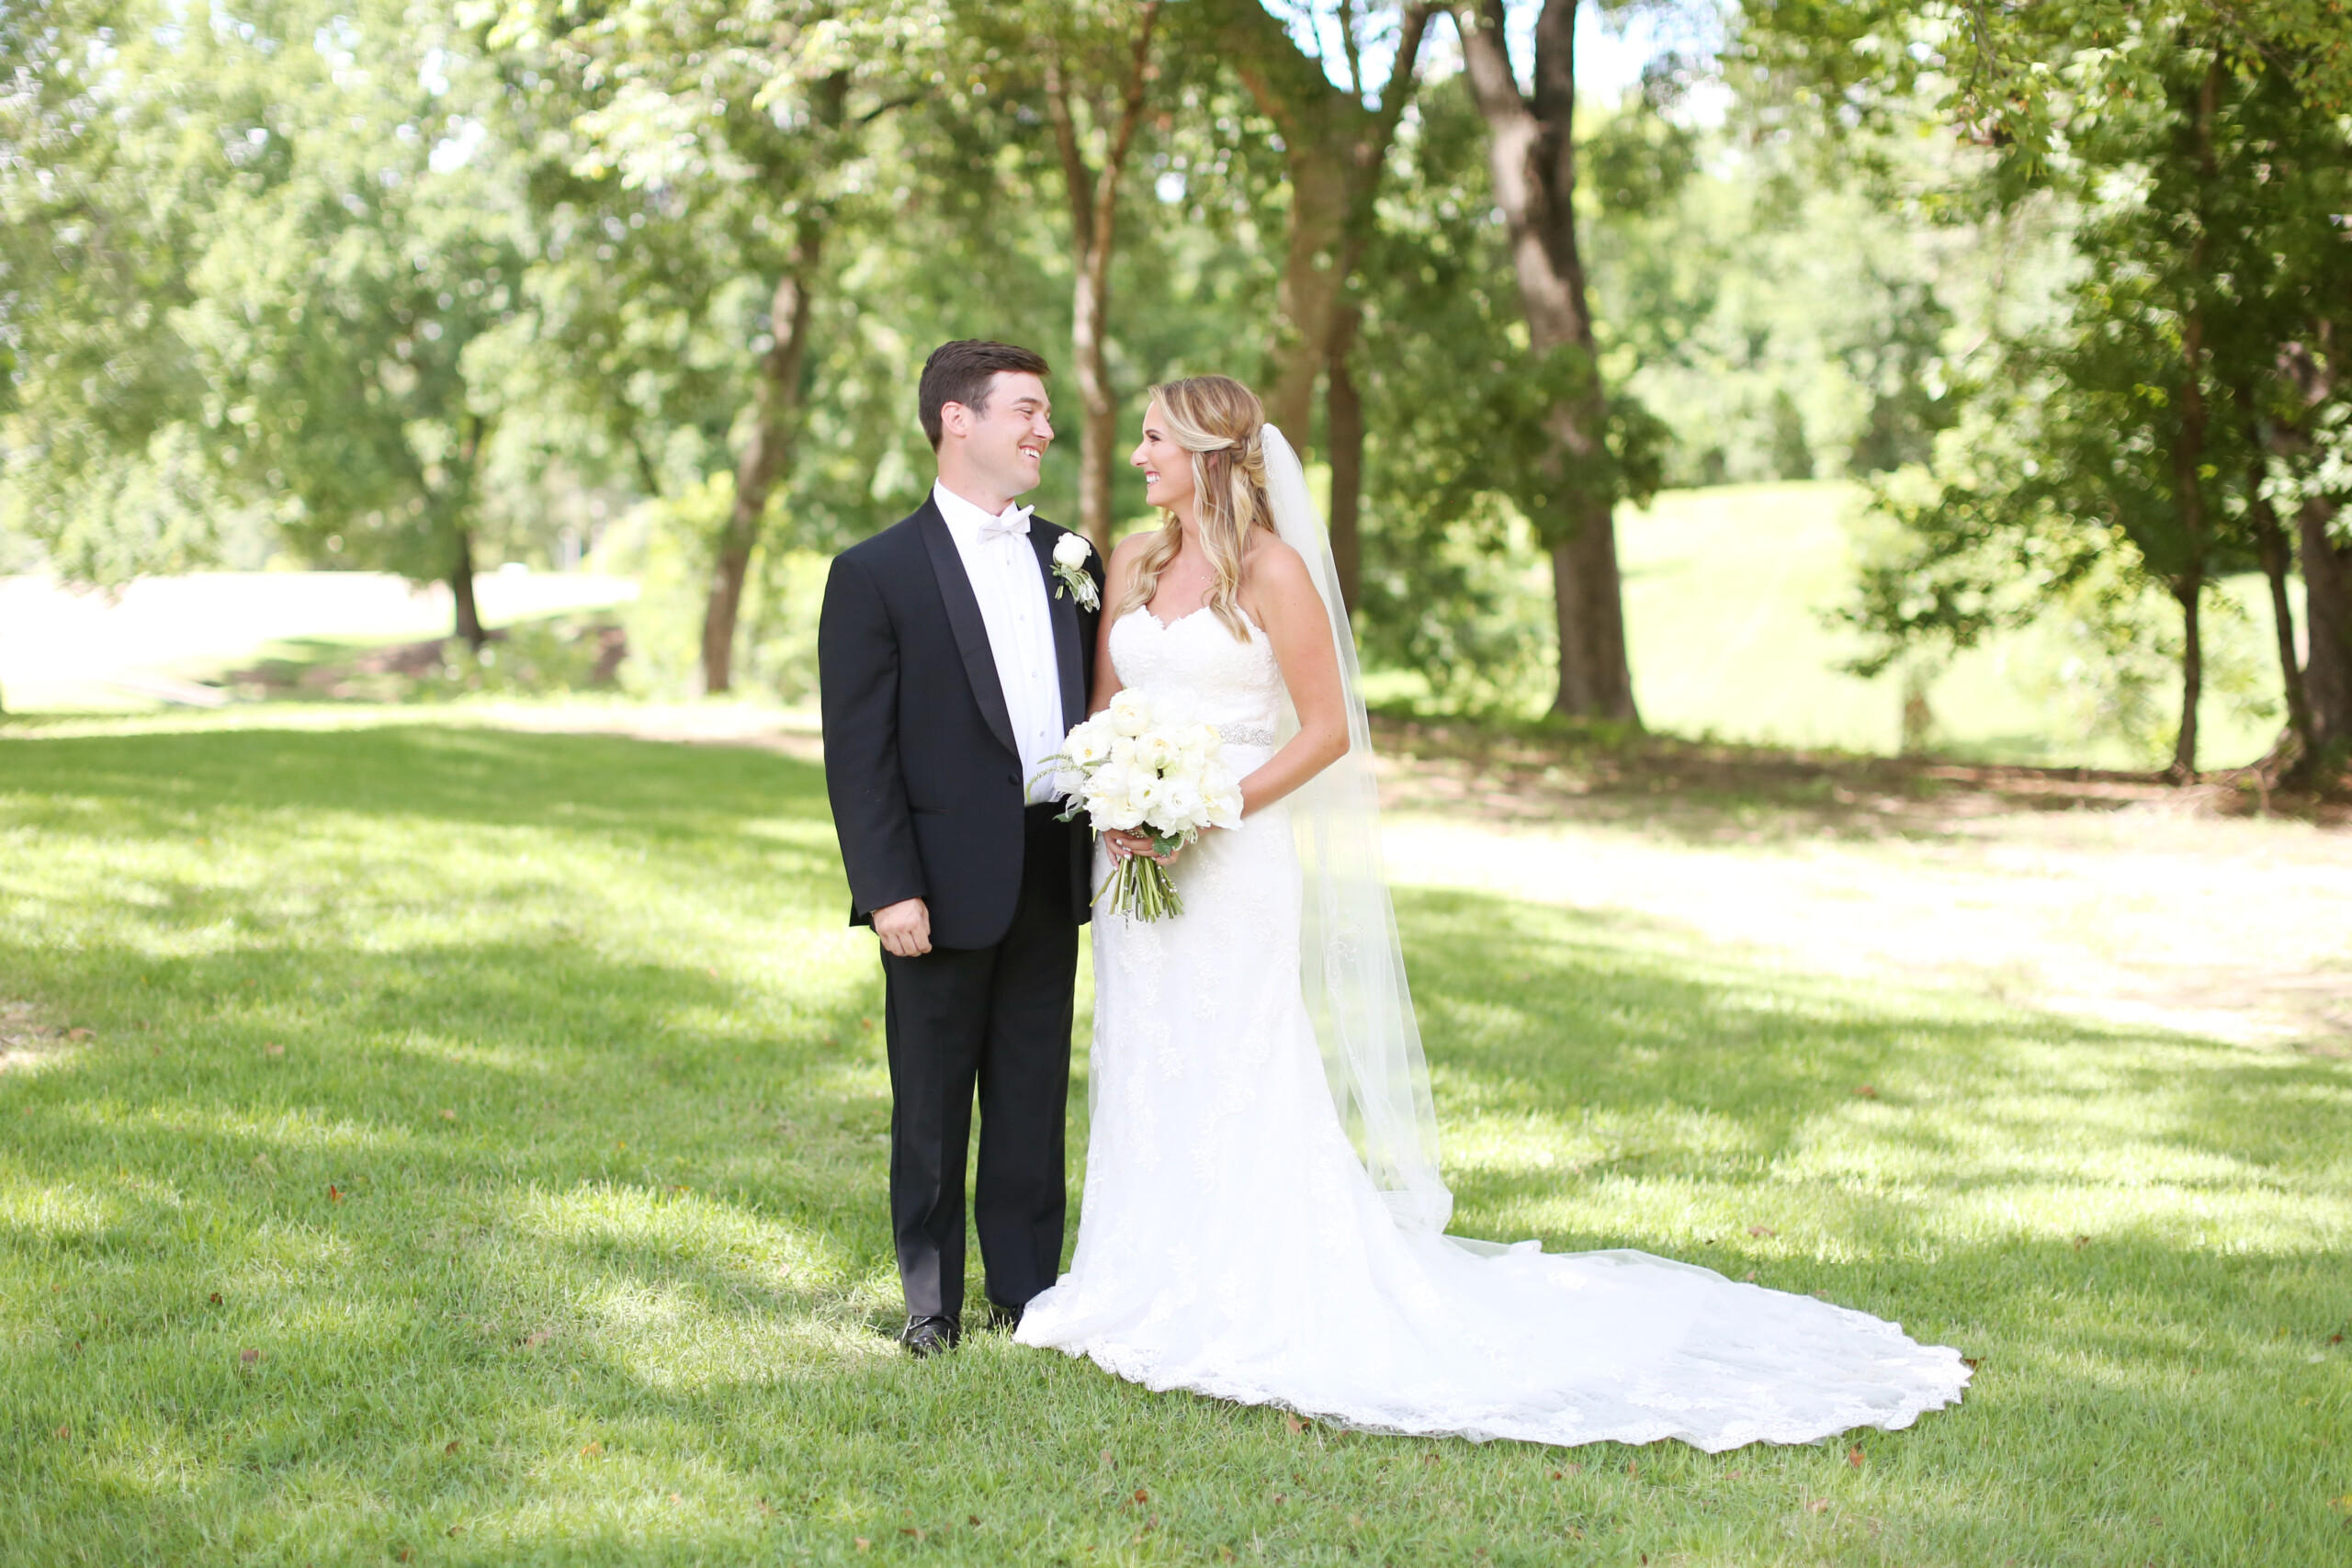 Eliza Kennard Wedding Photography featured on Nashville Bride Guide